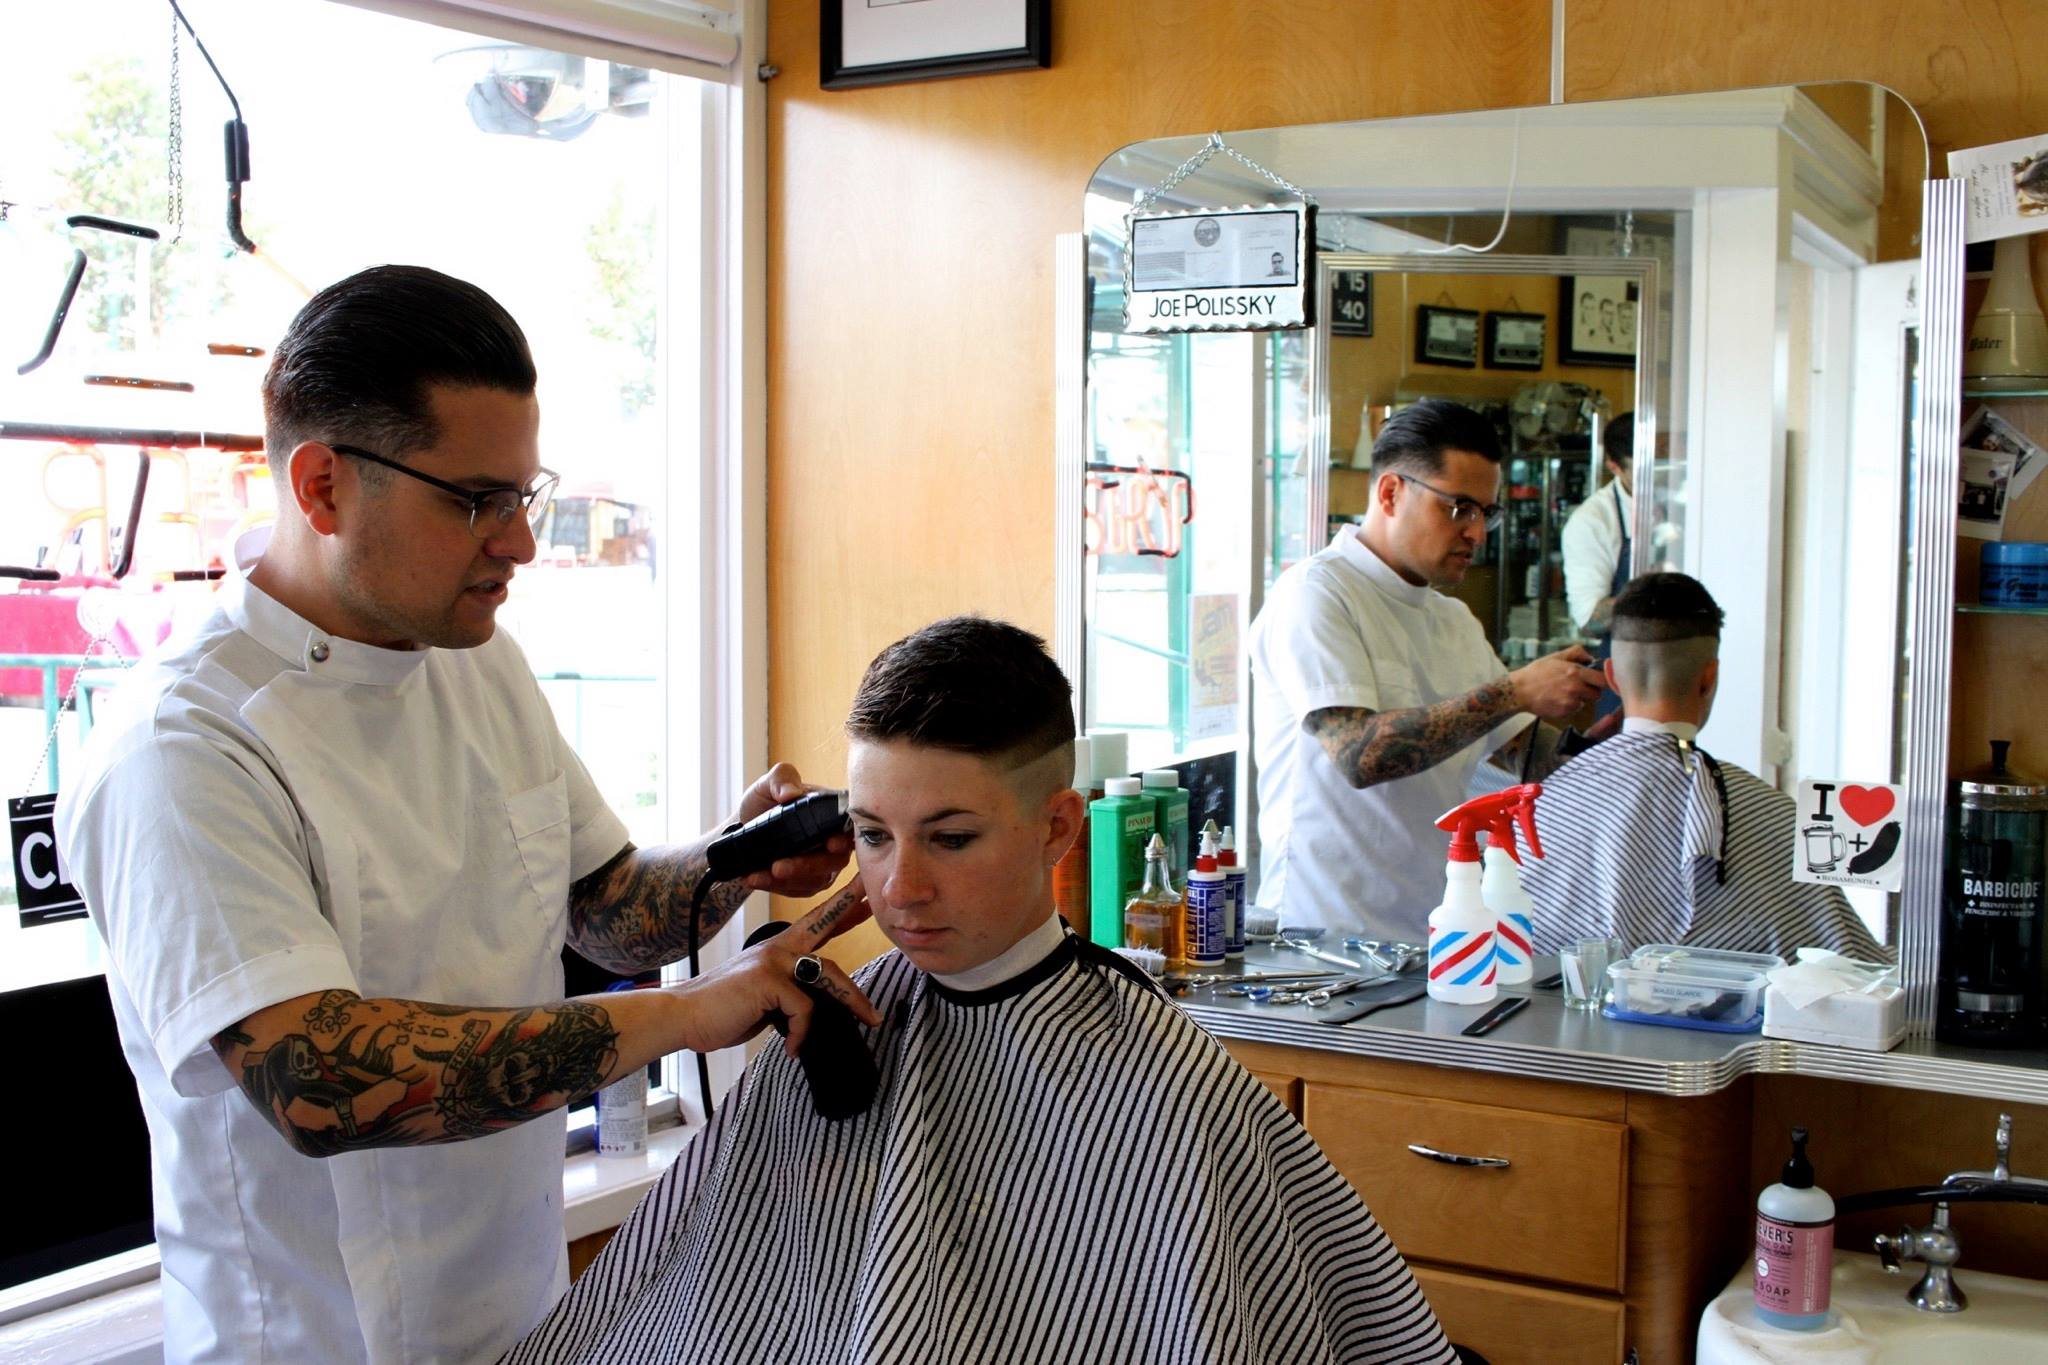 New Haircut Apparently Not Worthy Of Instagram Post By Barber